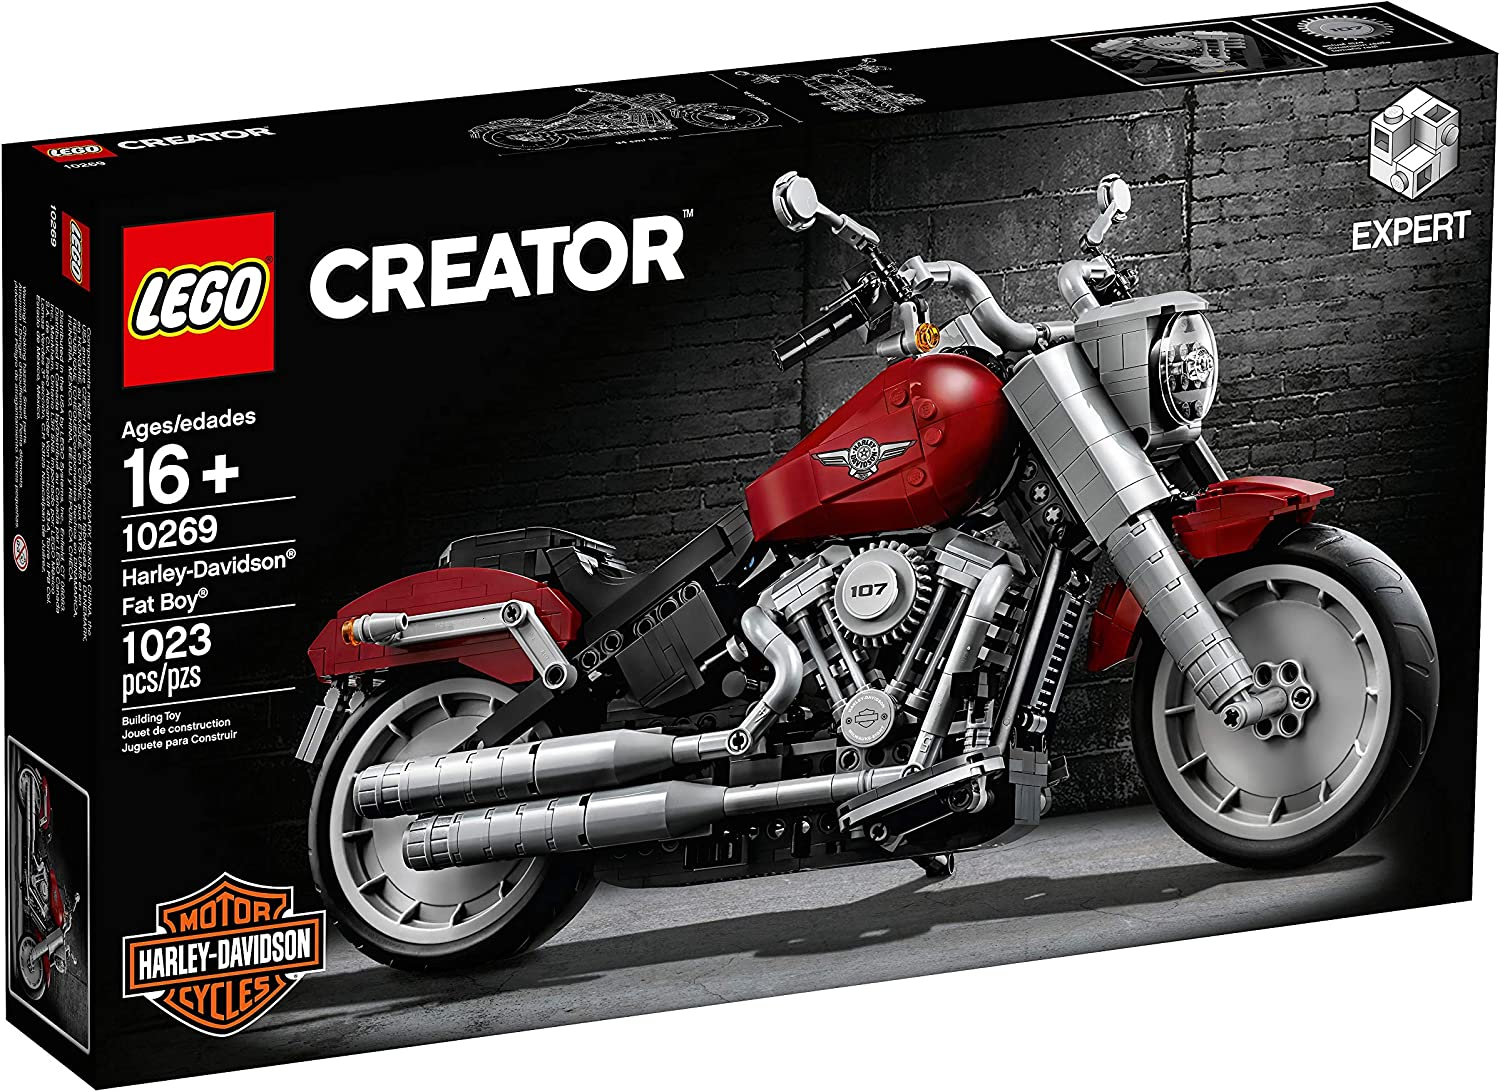 7 Best LEGO Motorcycle Sets Reviews of 2021 10